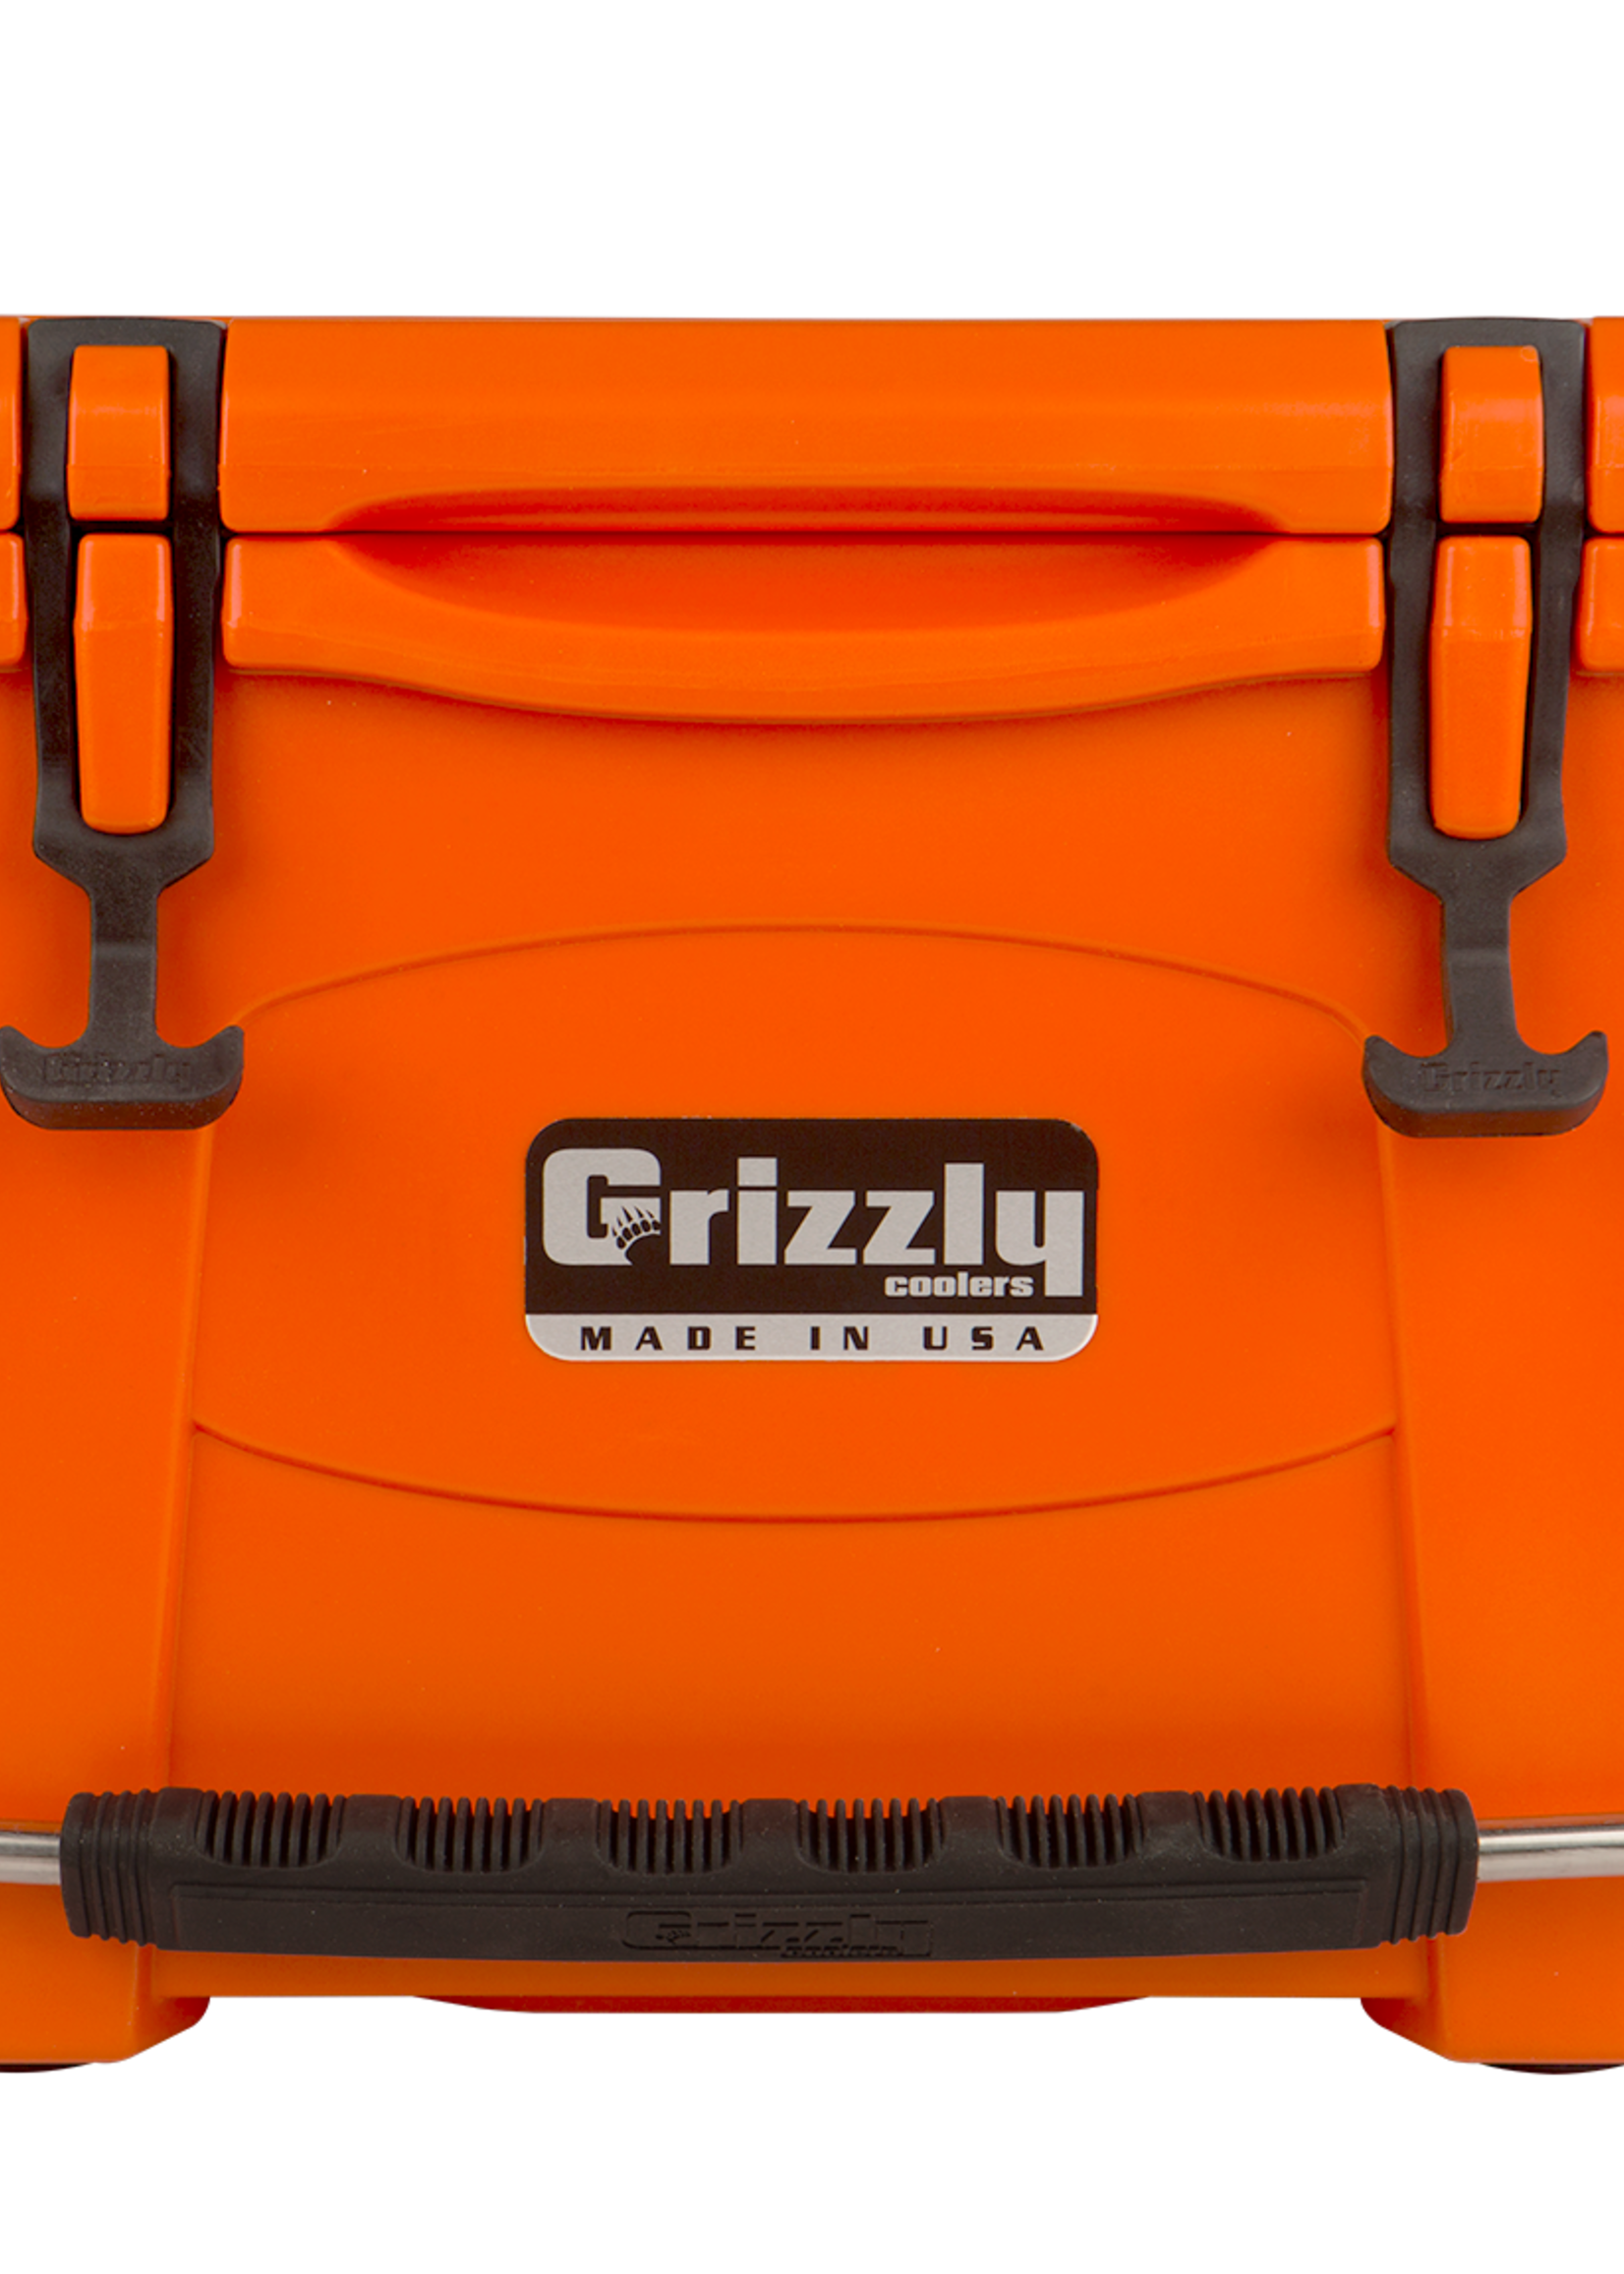 Grizzly Coolers Grizzly 20 Cooler